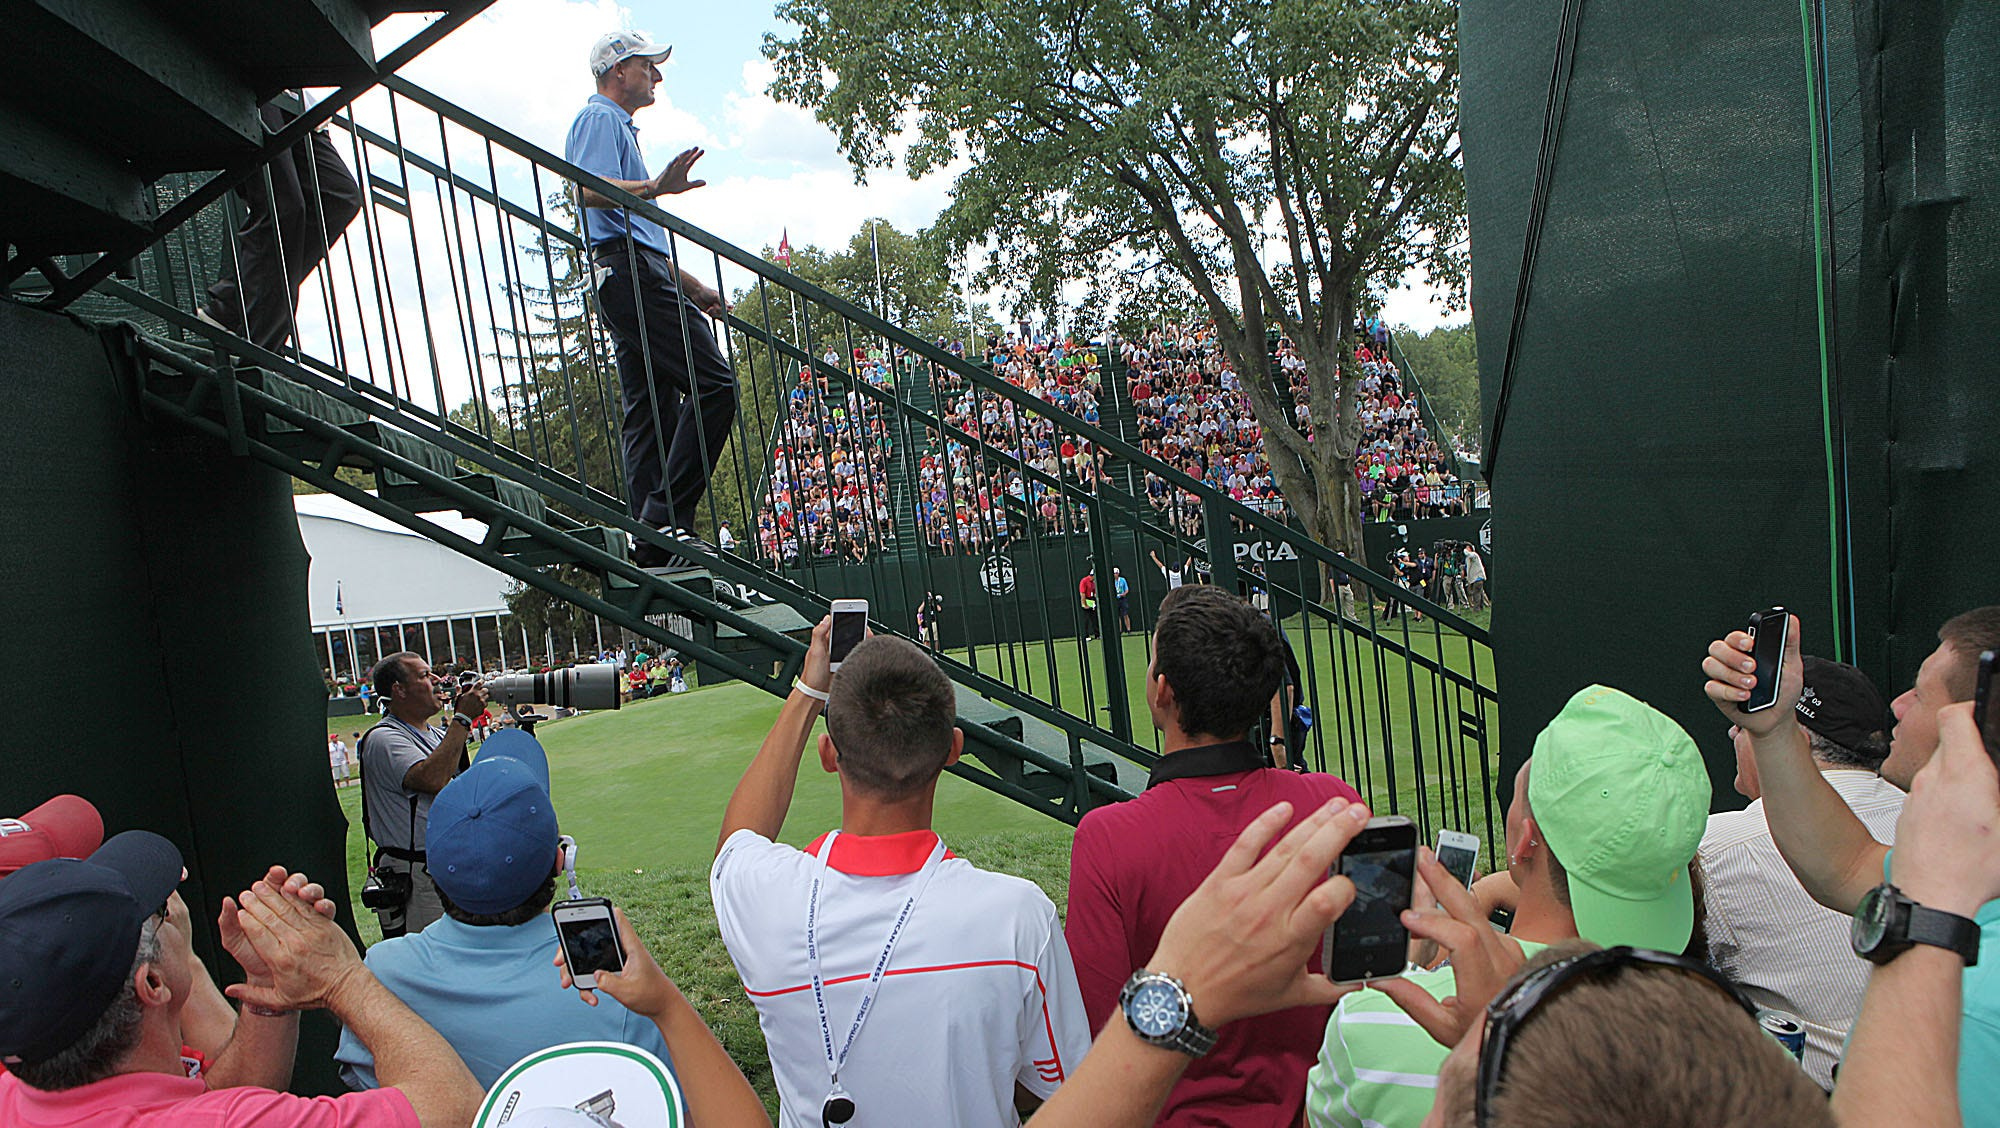 Jim Furyk waves to fans as he walks down the steps to the first tee box Sunday.